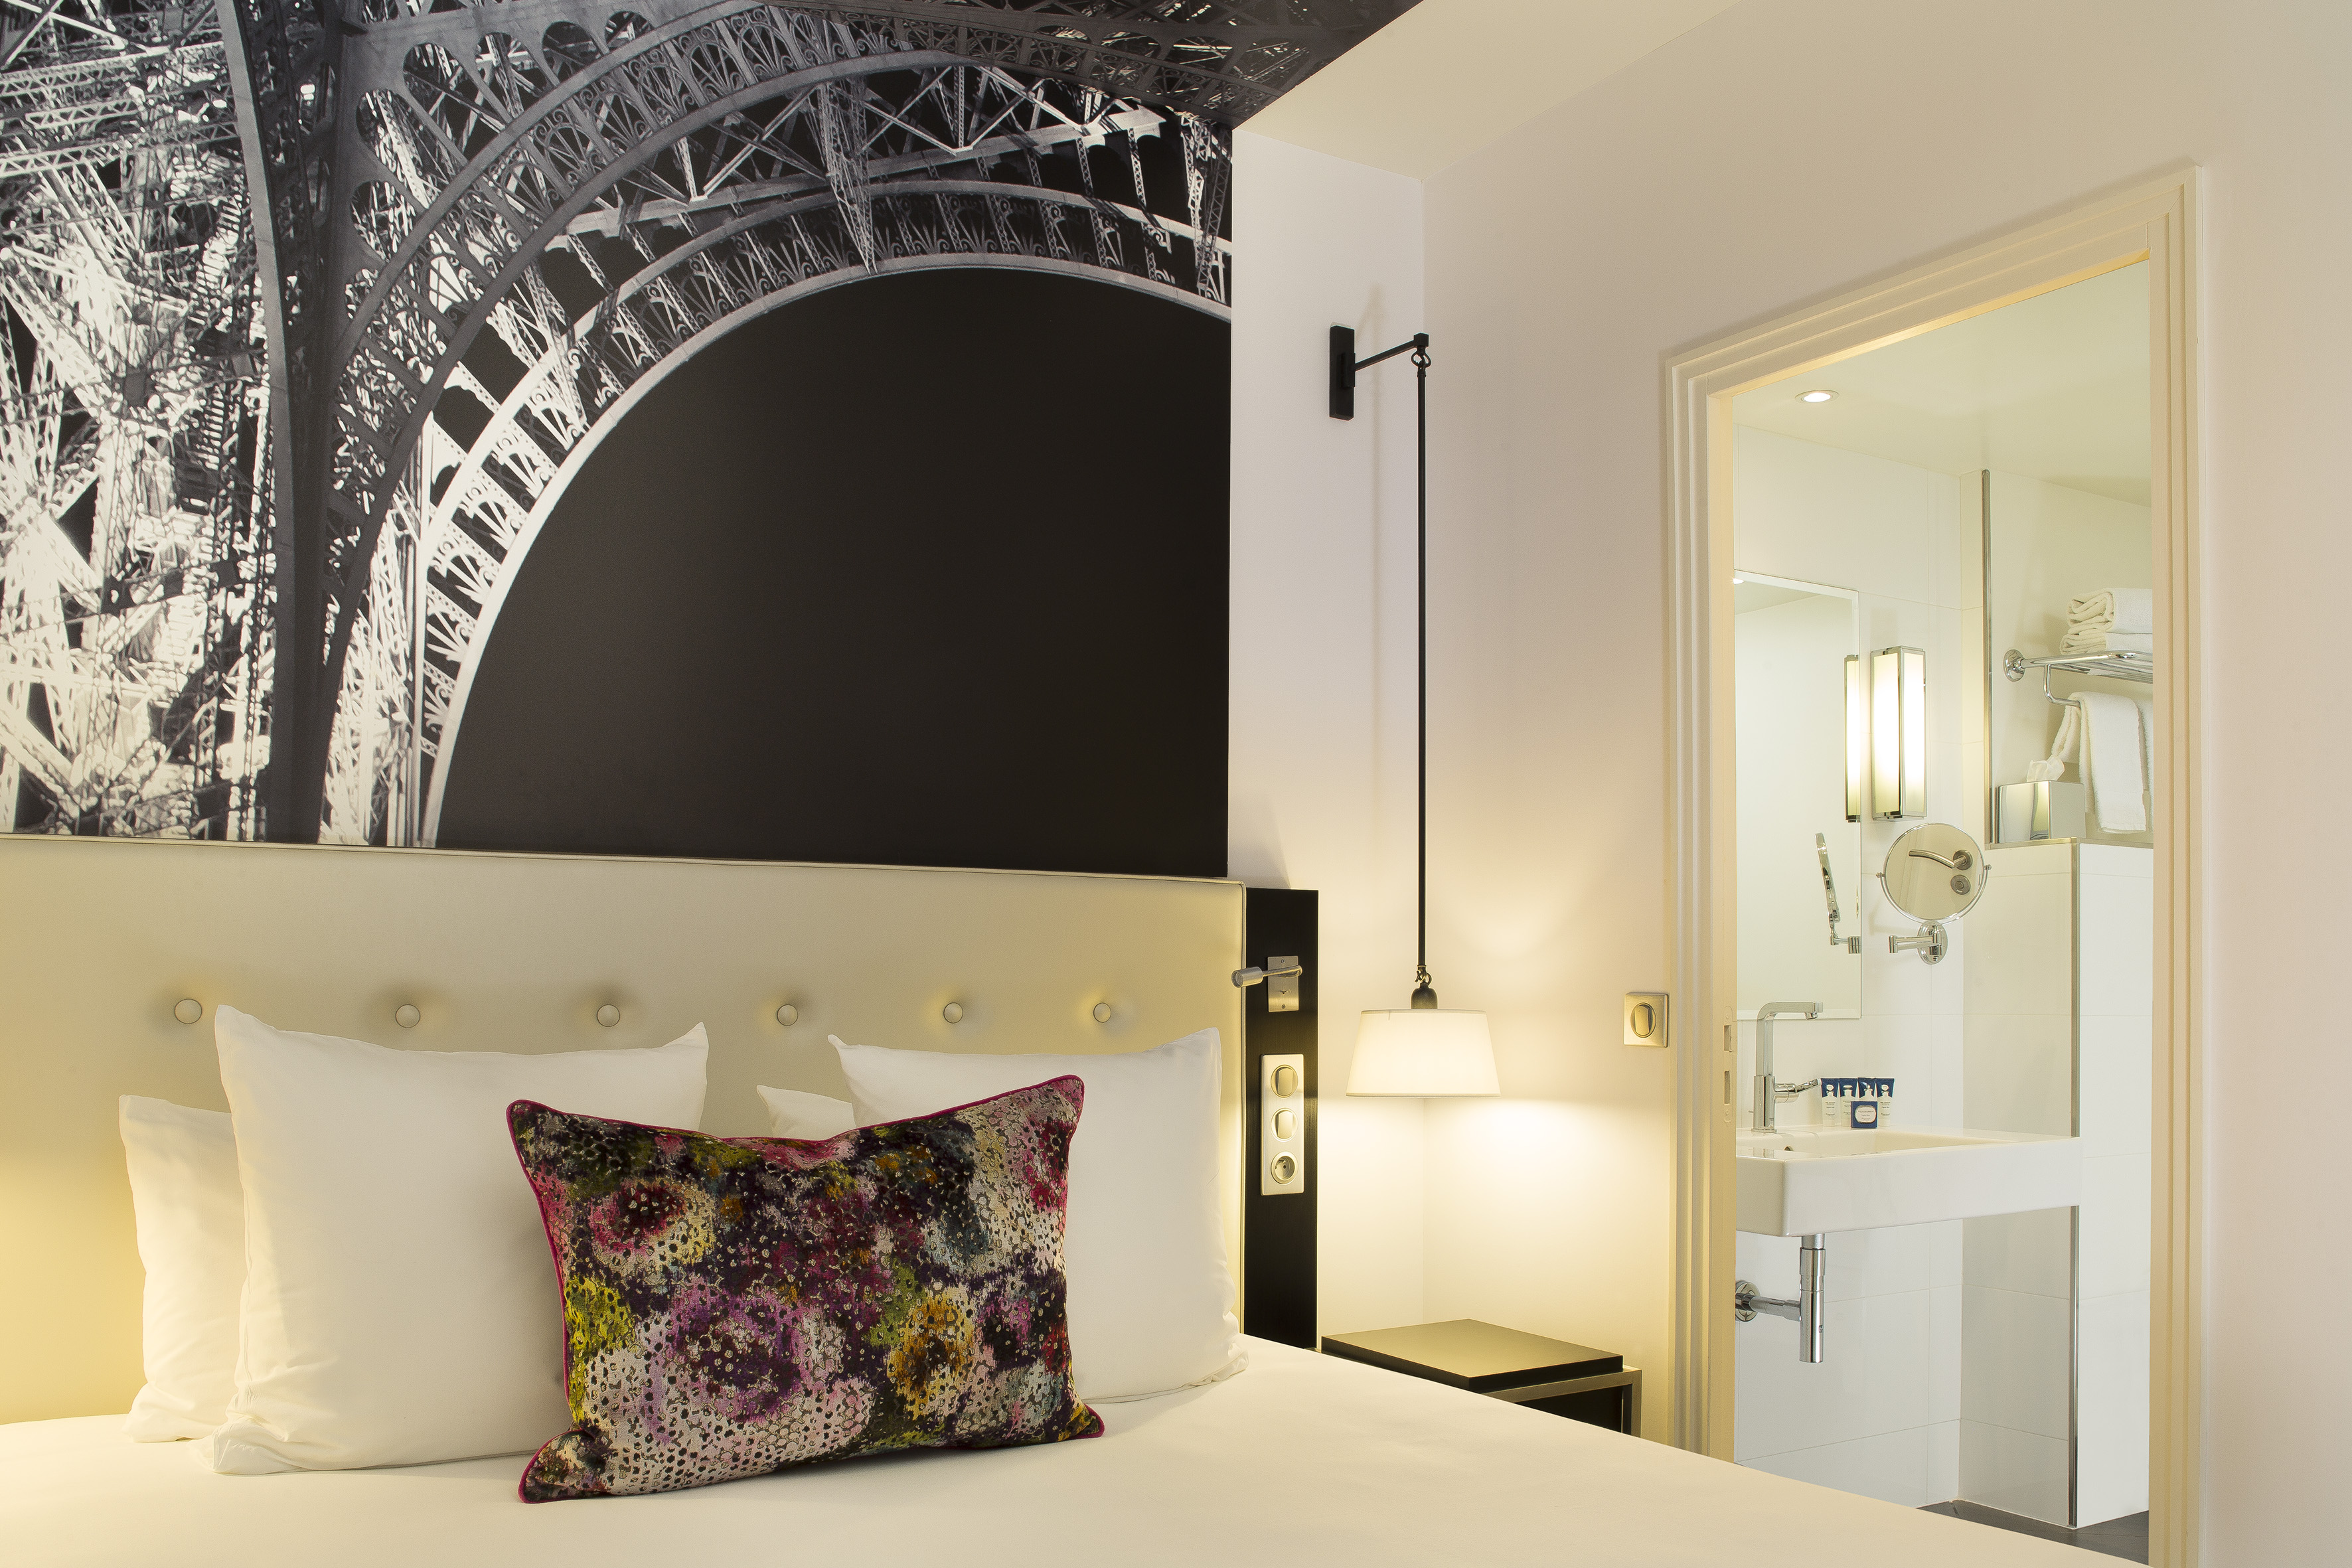 723/Gustave/chambre_/Cls/HOTEL_GUSTAVE_-_Classique_-_14.jpg